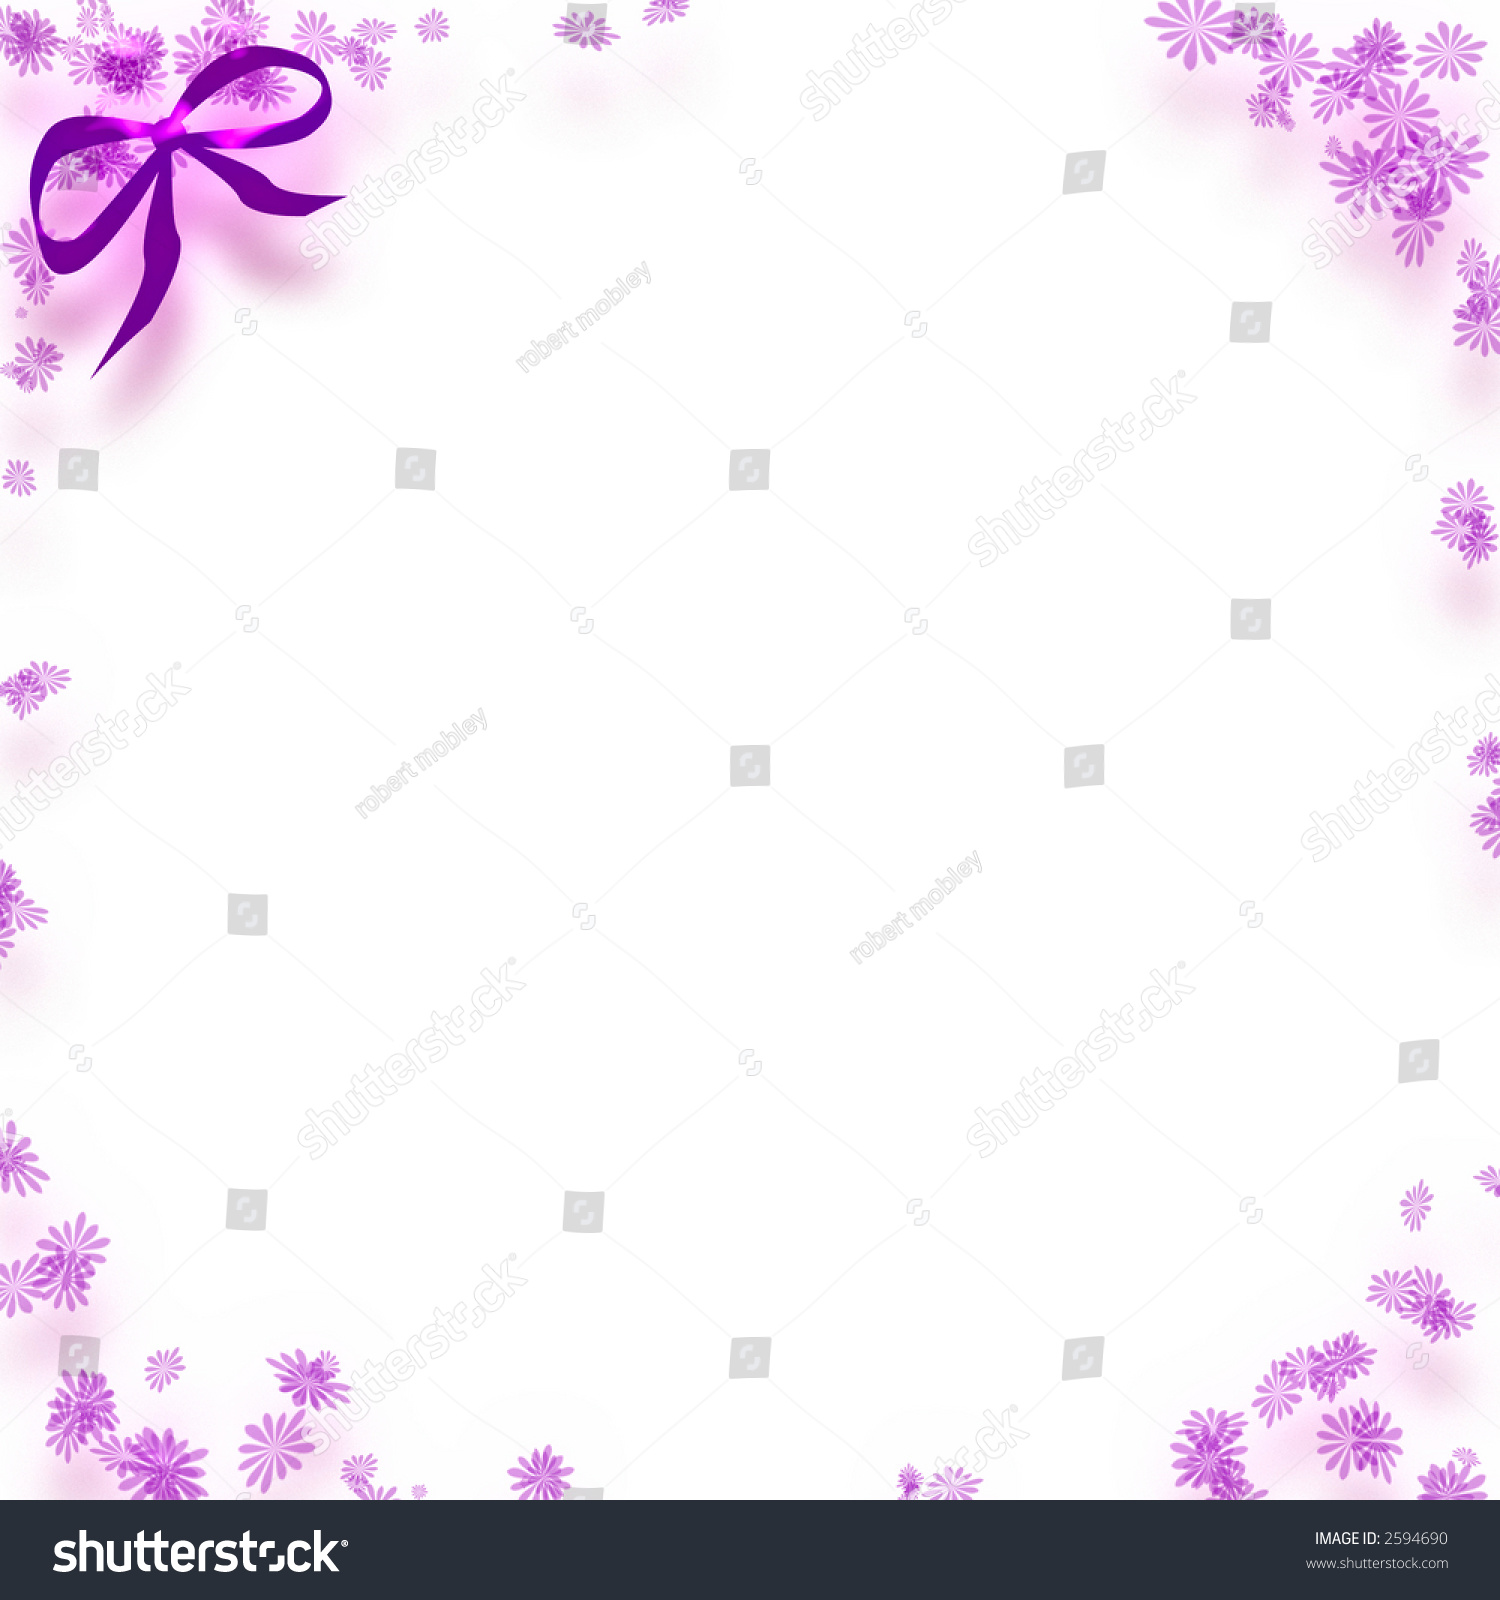 White note paper flower border bowcardclipart stock illustration white note paper with flower border and bowcardclip art mightylinksfo